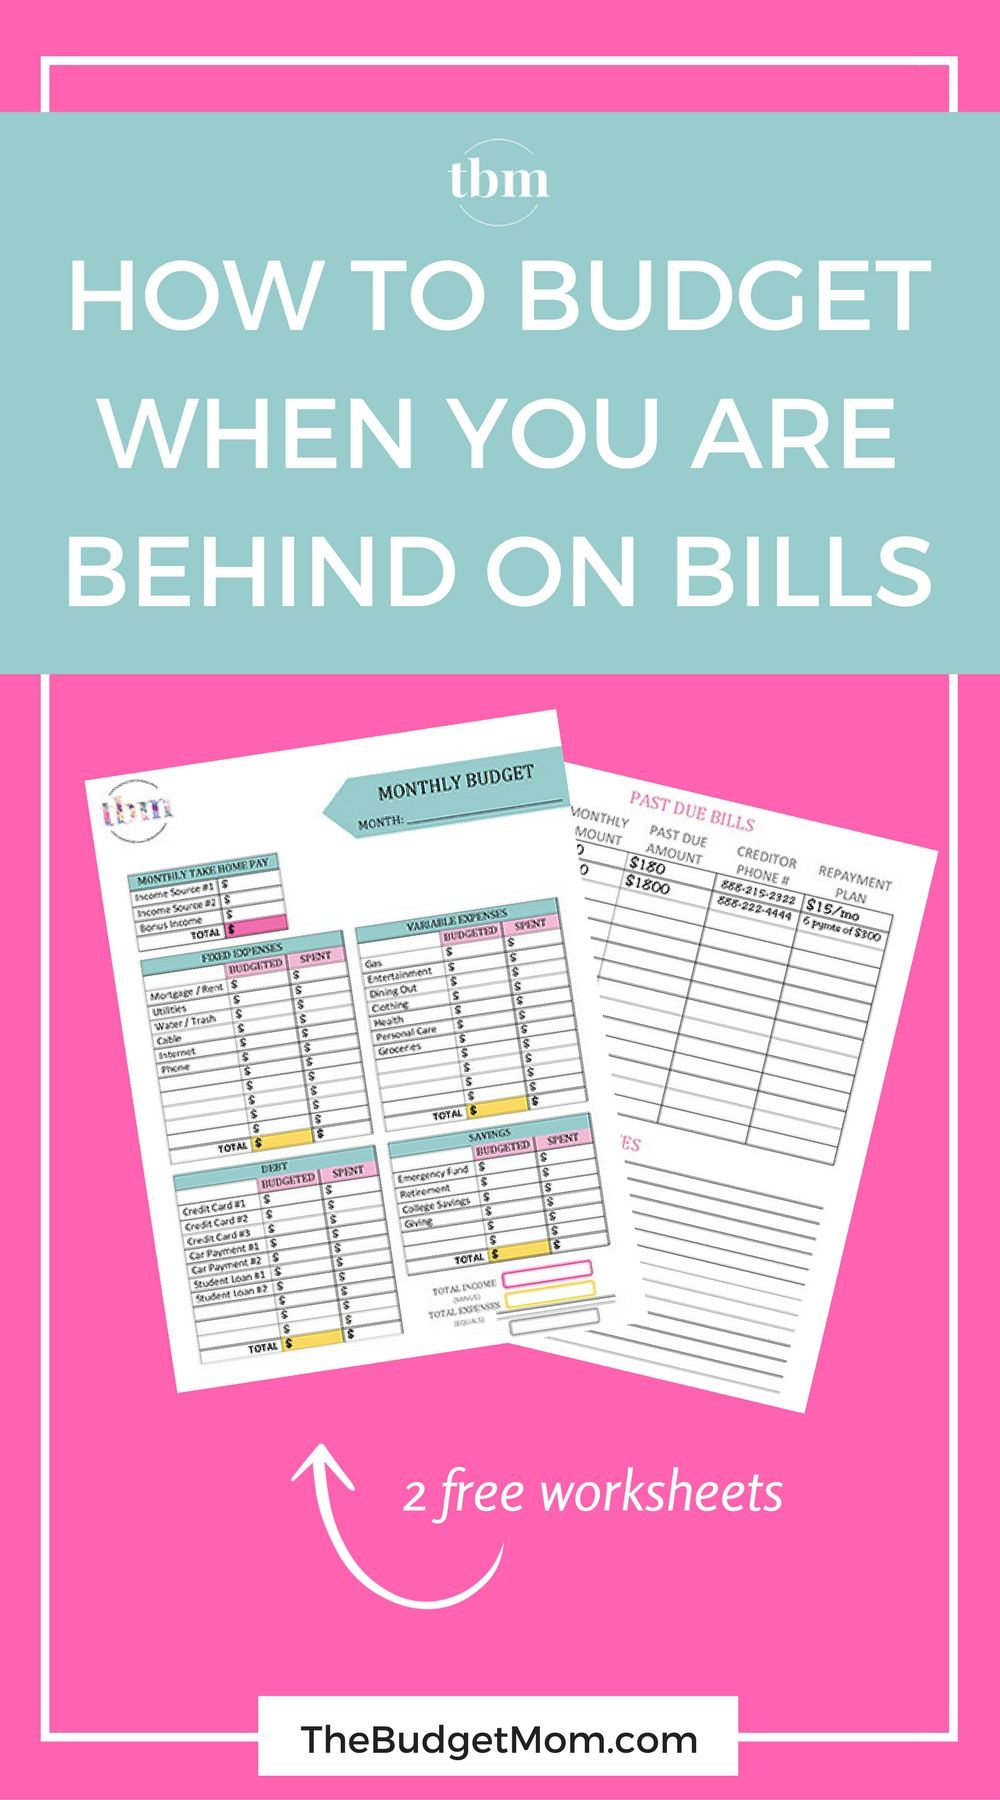 How to Budget When You Are Behind on Bills | Step guide, Worksheets ...